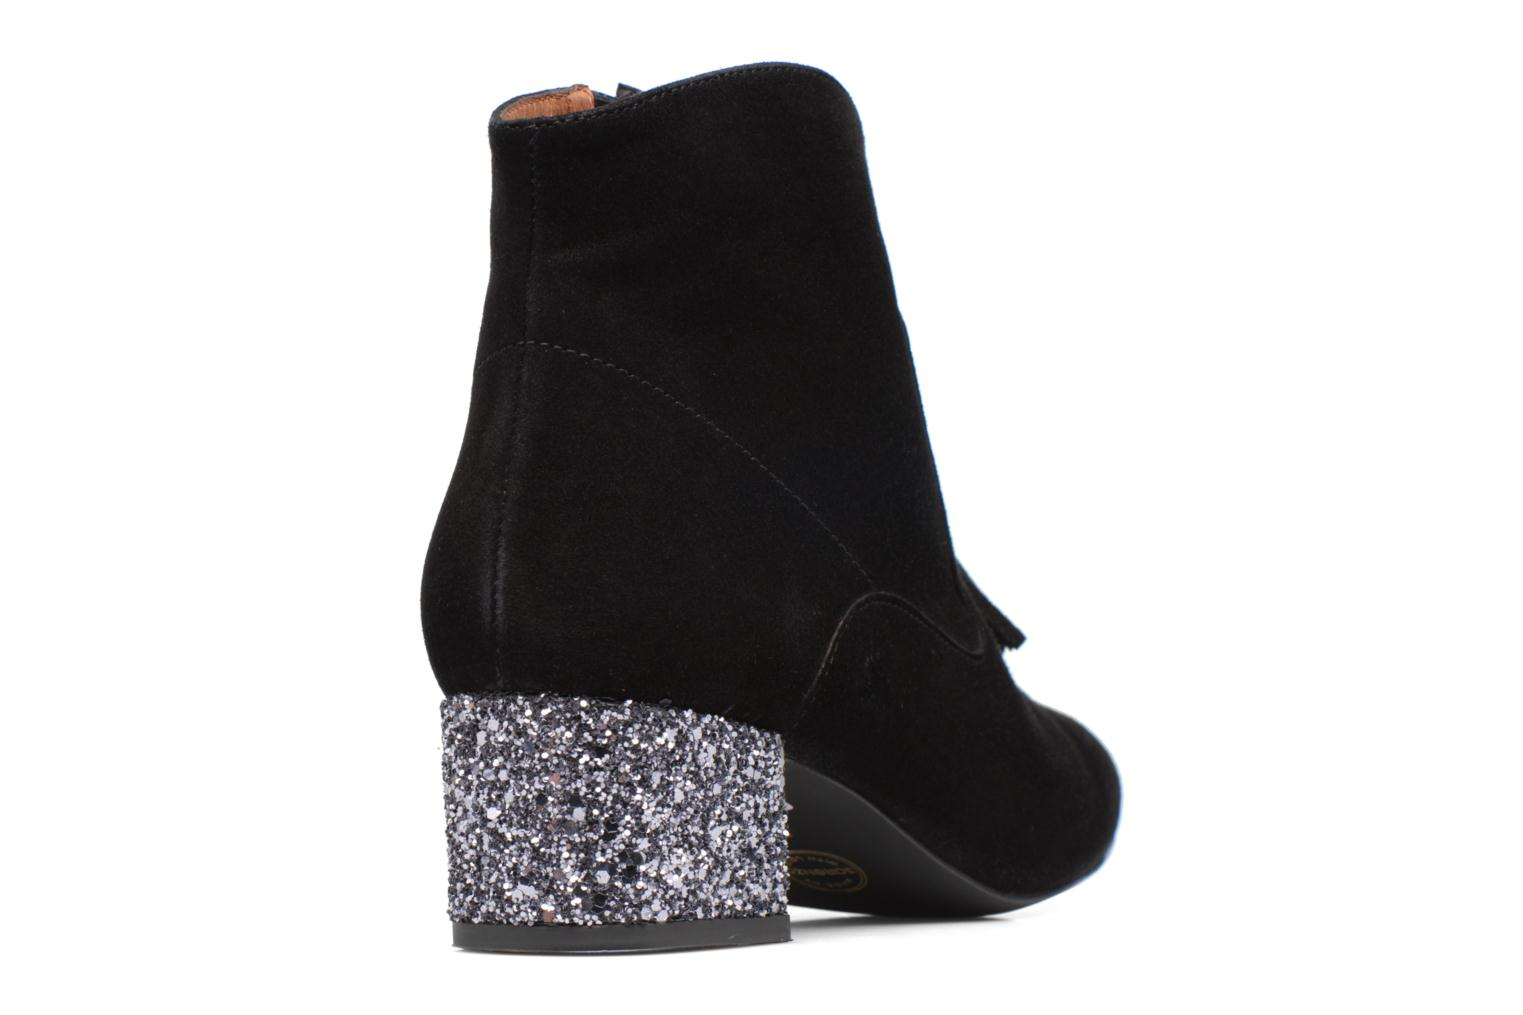 Winter Freak #6 Cuir velours noir